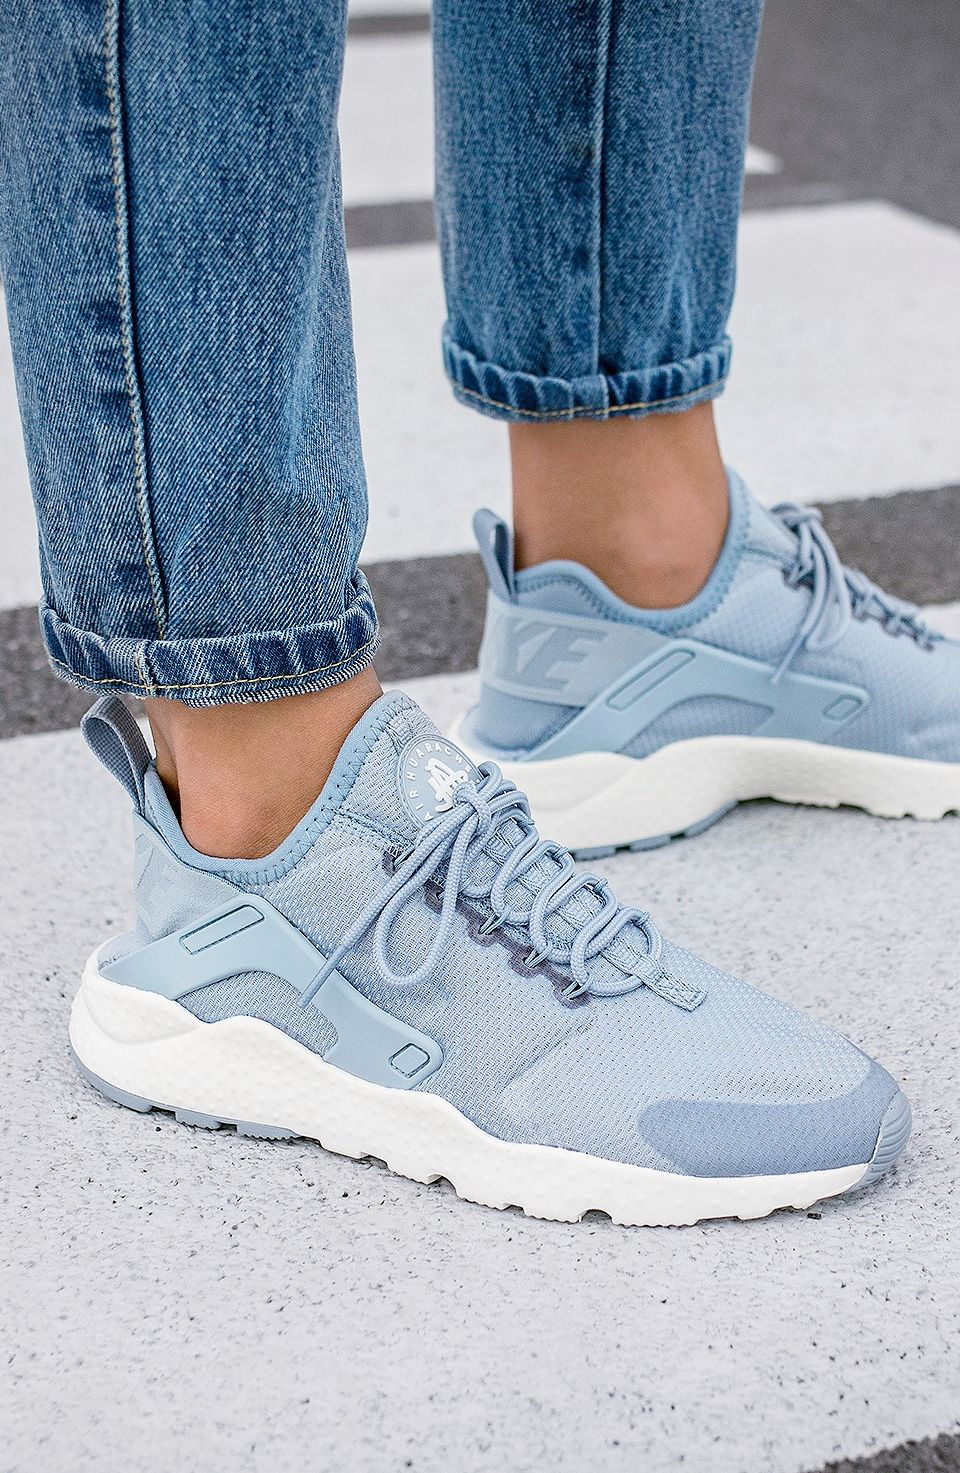 new product 8c218 15ea3 Nike Wmns Air Huarache Run Ultra Blue Grey (via Kicks-daily.com)